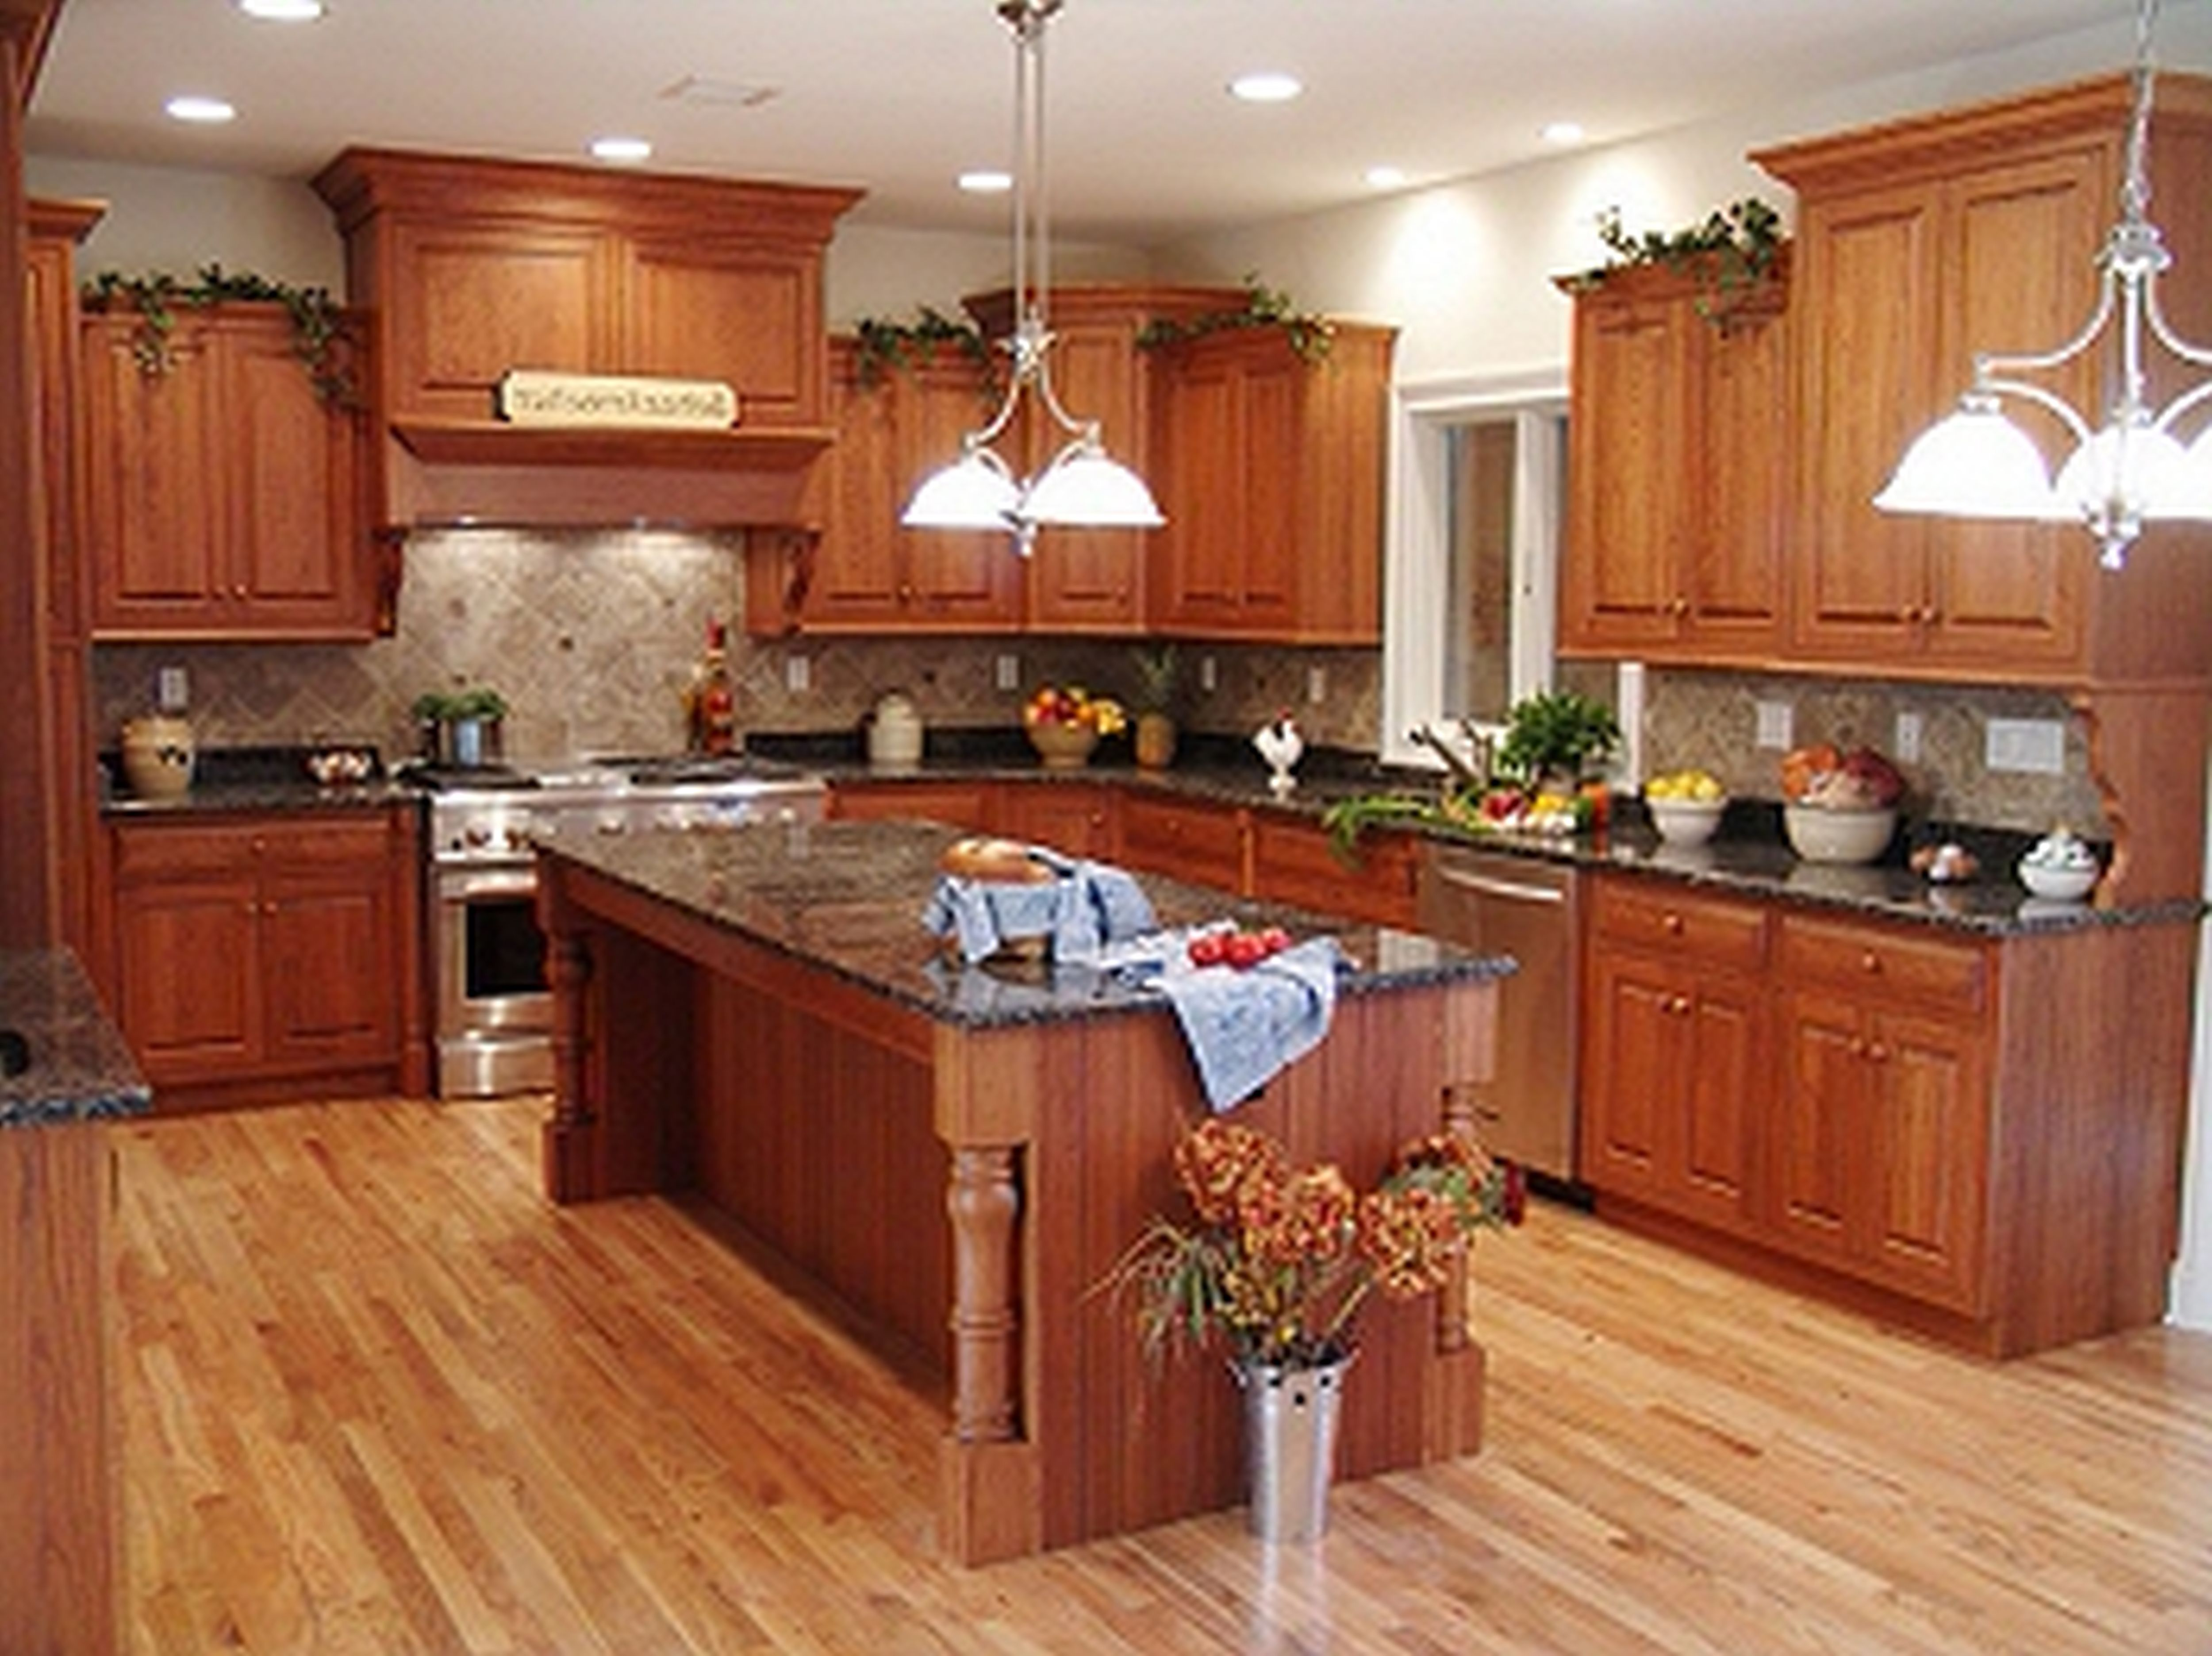 rustic kitchen cabinets fake wooden kitchen floor plans with mahogany kitchen cabinets on kitchen ideas cabinets id=96810